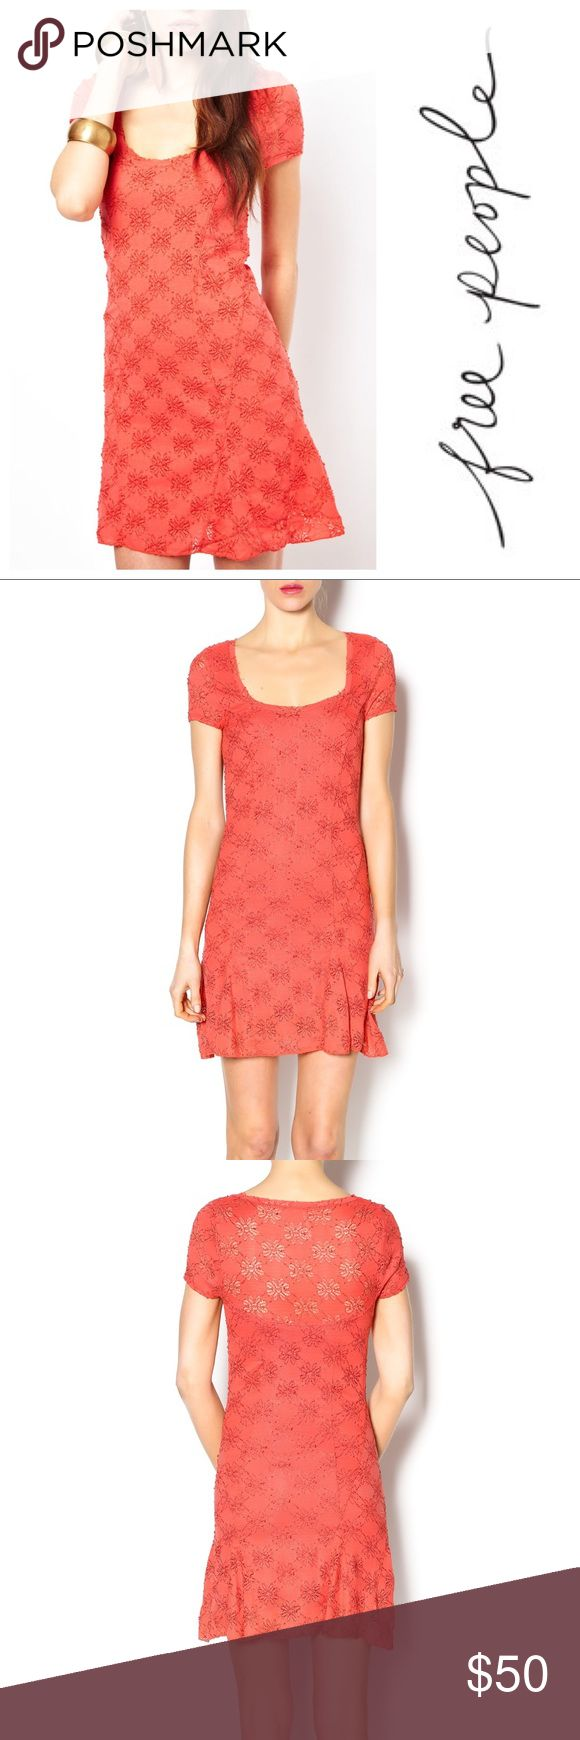 Free People Daisy Godet Dress in Burnt Orange Dressy Free People Daisy Godet Dress in Burnt Orange!  🍁 Size M 🍁 cute daisy embroidered detailing throughout 🍁 low scoop neck 🍁 cute cap sleeves 🍁 lined except for in the top back & shoulder for a Lacey effect 🍁 cute flaring at the hem to flatter your shape 🍁 soft & heavy material 🍁 perfect summer dress!  Materials  97% Nylon  3% Spandex Free People Dresses